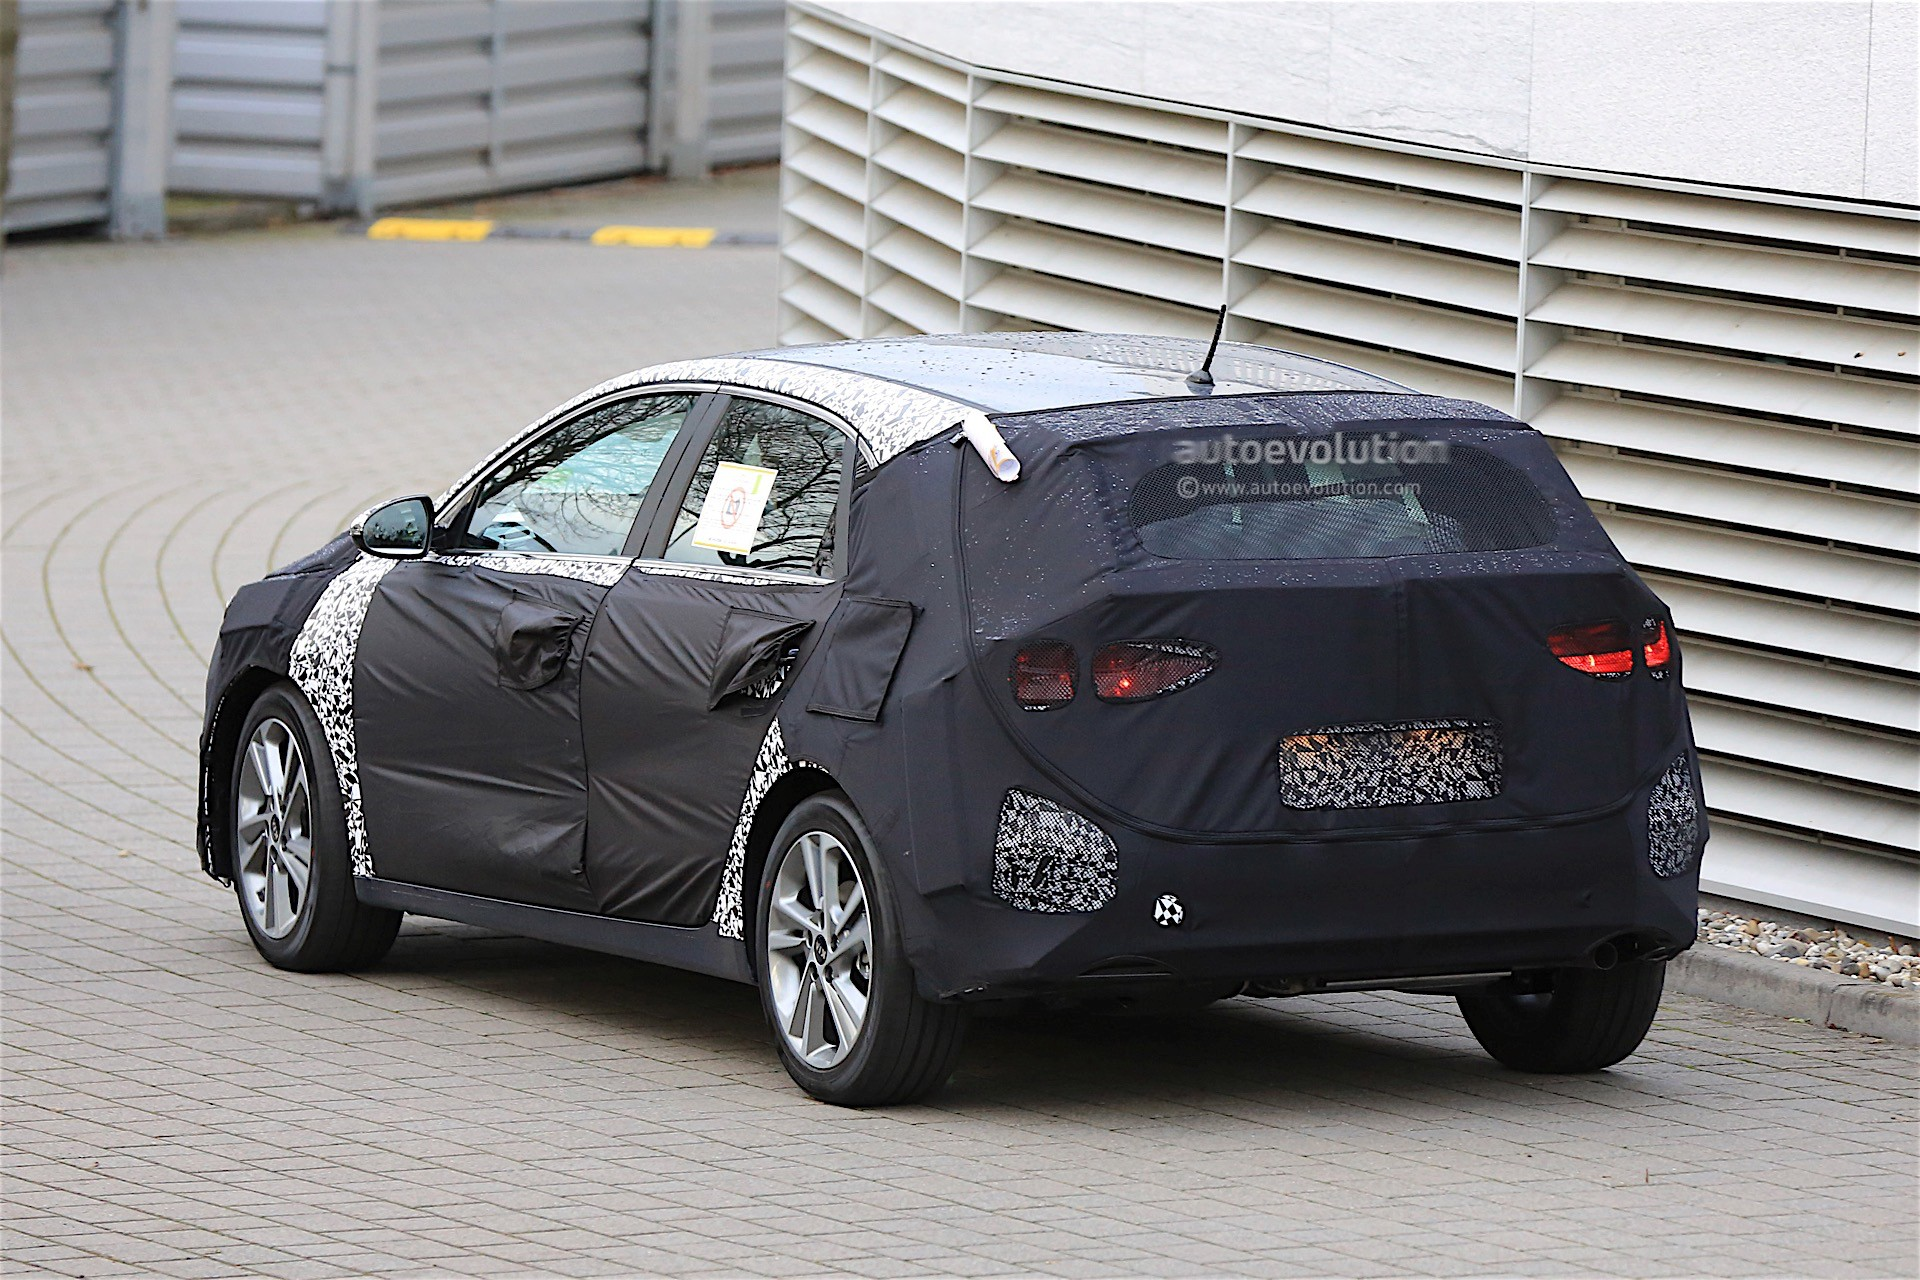 2018 kia ceed spied for the first time looks familiar. Black Bedroom Furniture Sets. Home Design Ideas